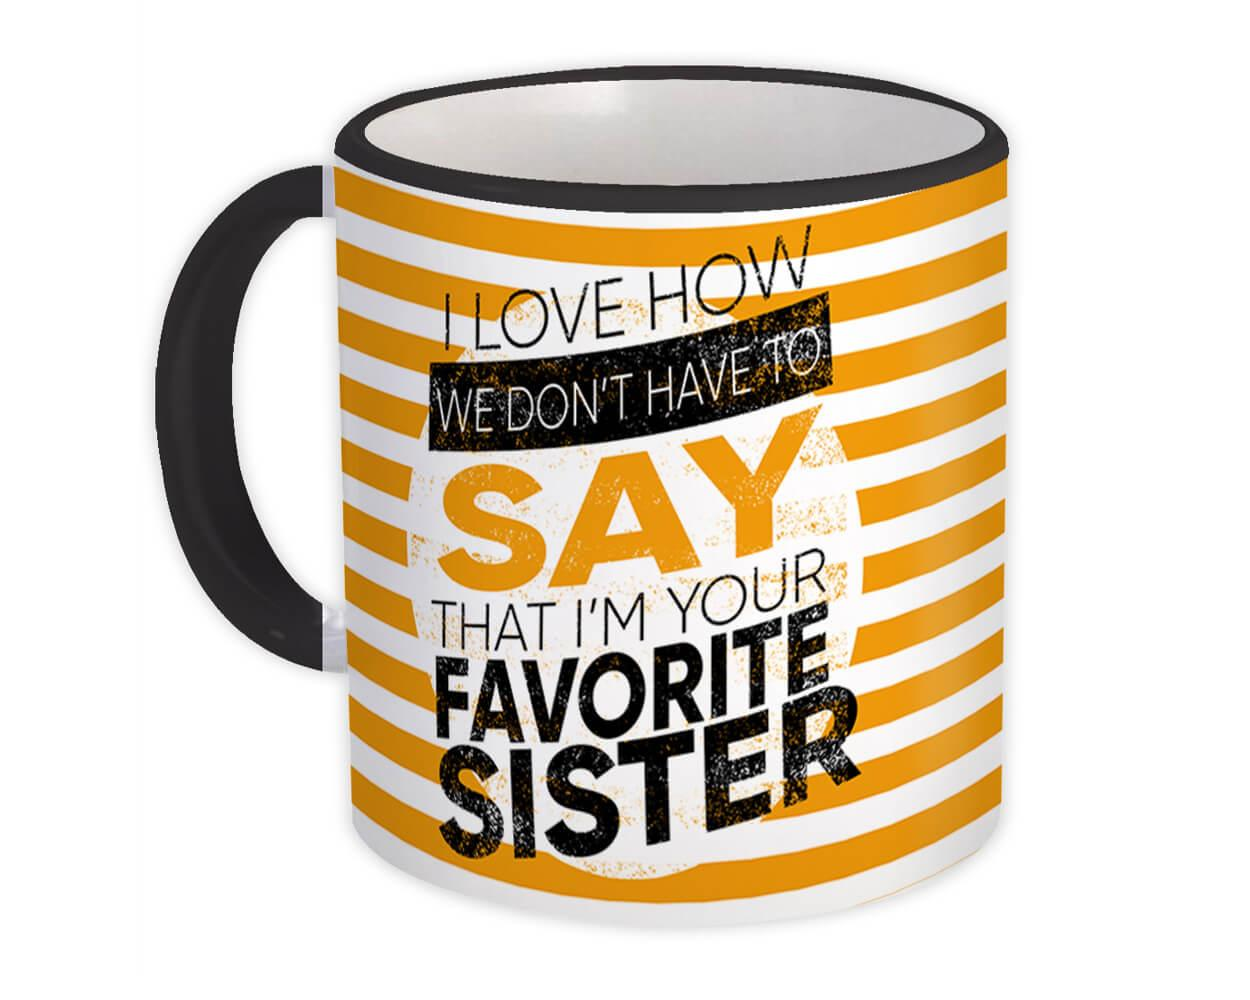 Favorite Sister : Gift Mug I Love How We Don't Have to Say